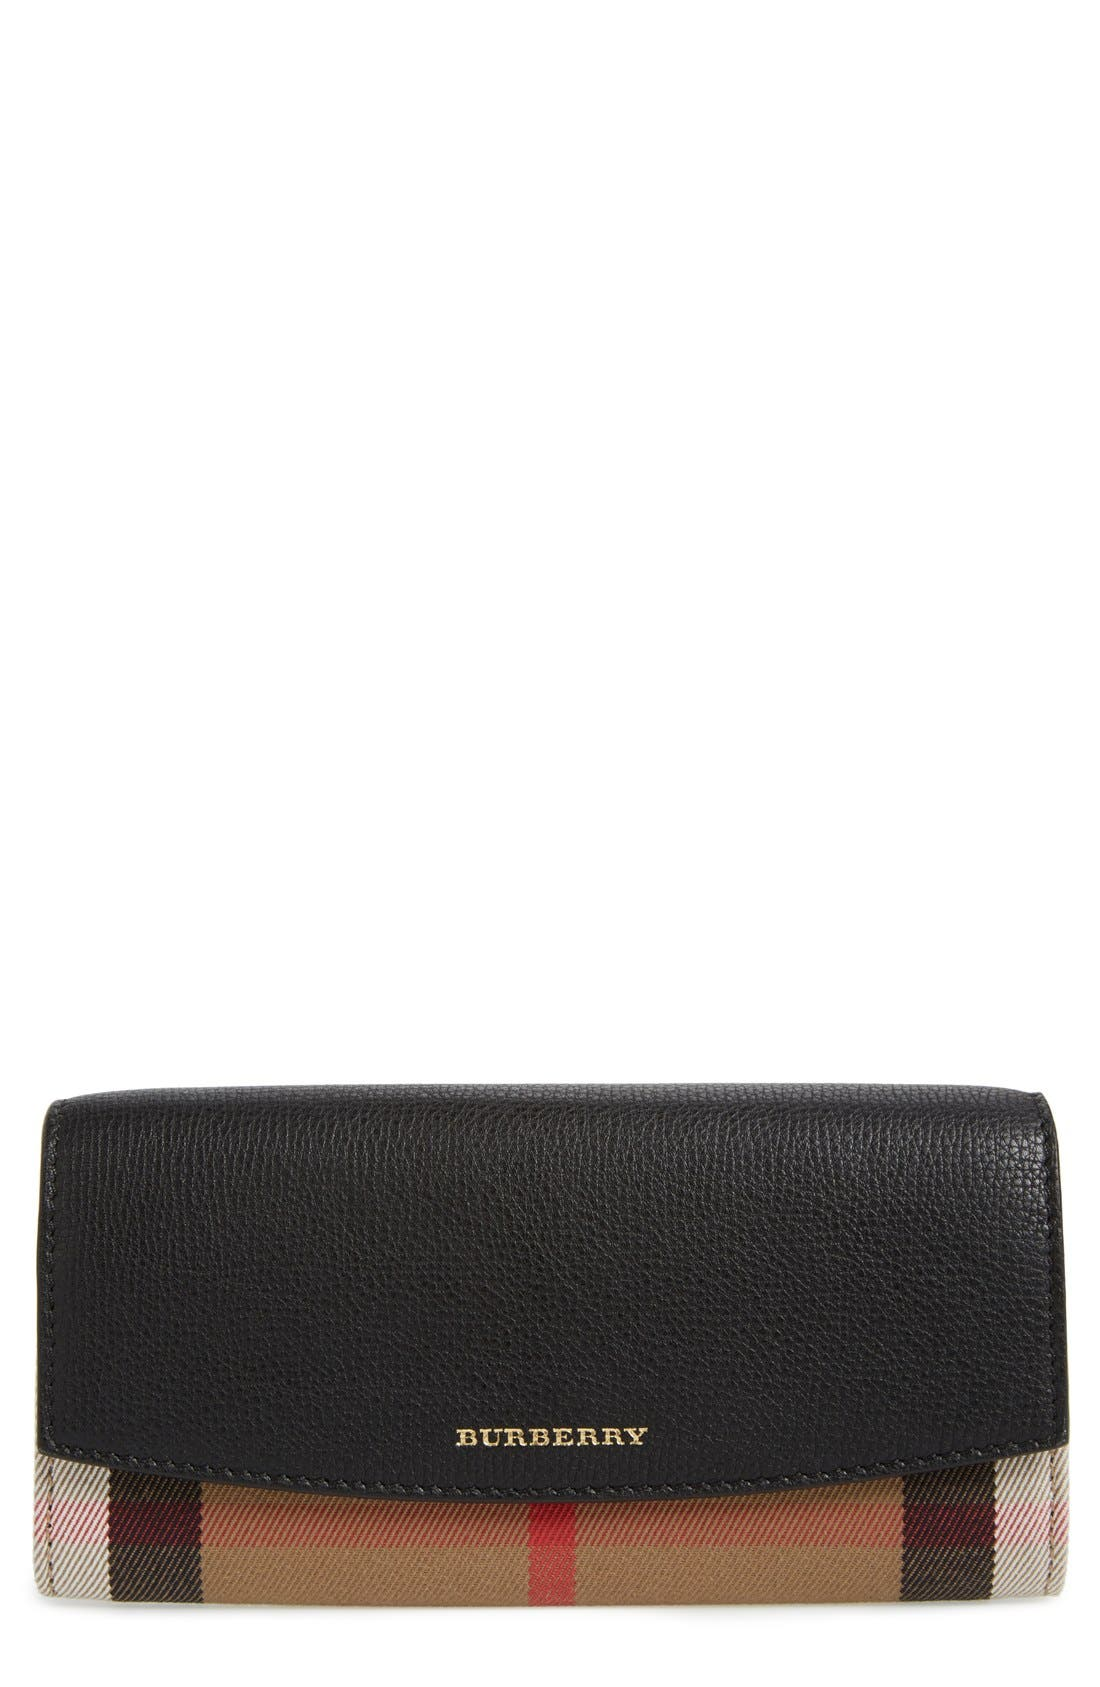 Main Image - Burberry 'Porter' Continental Wallet